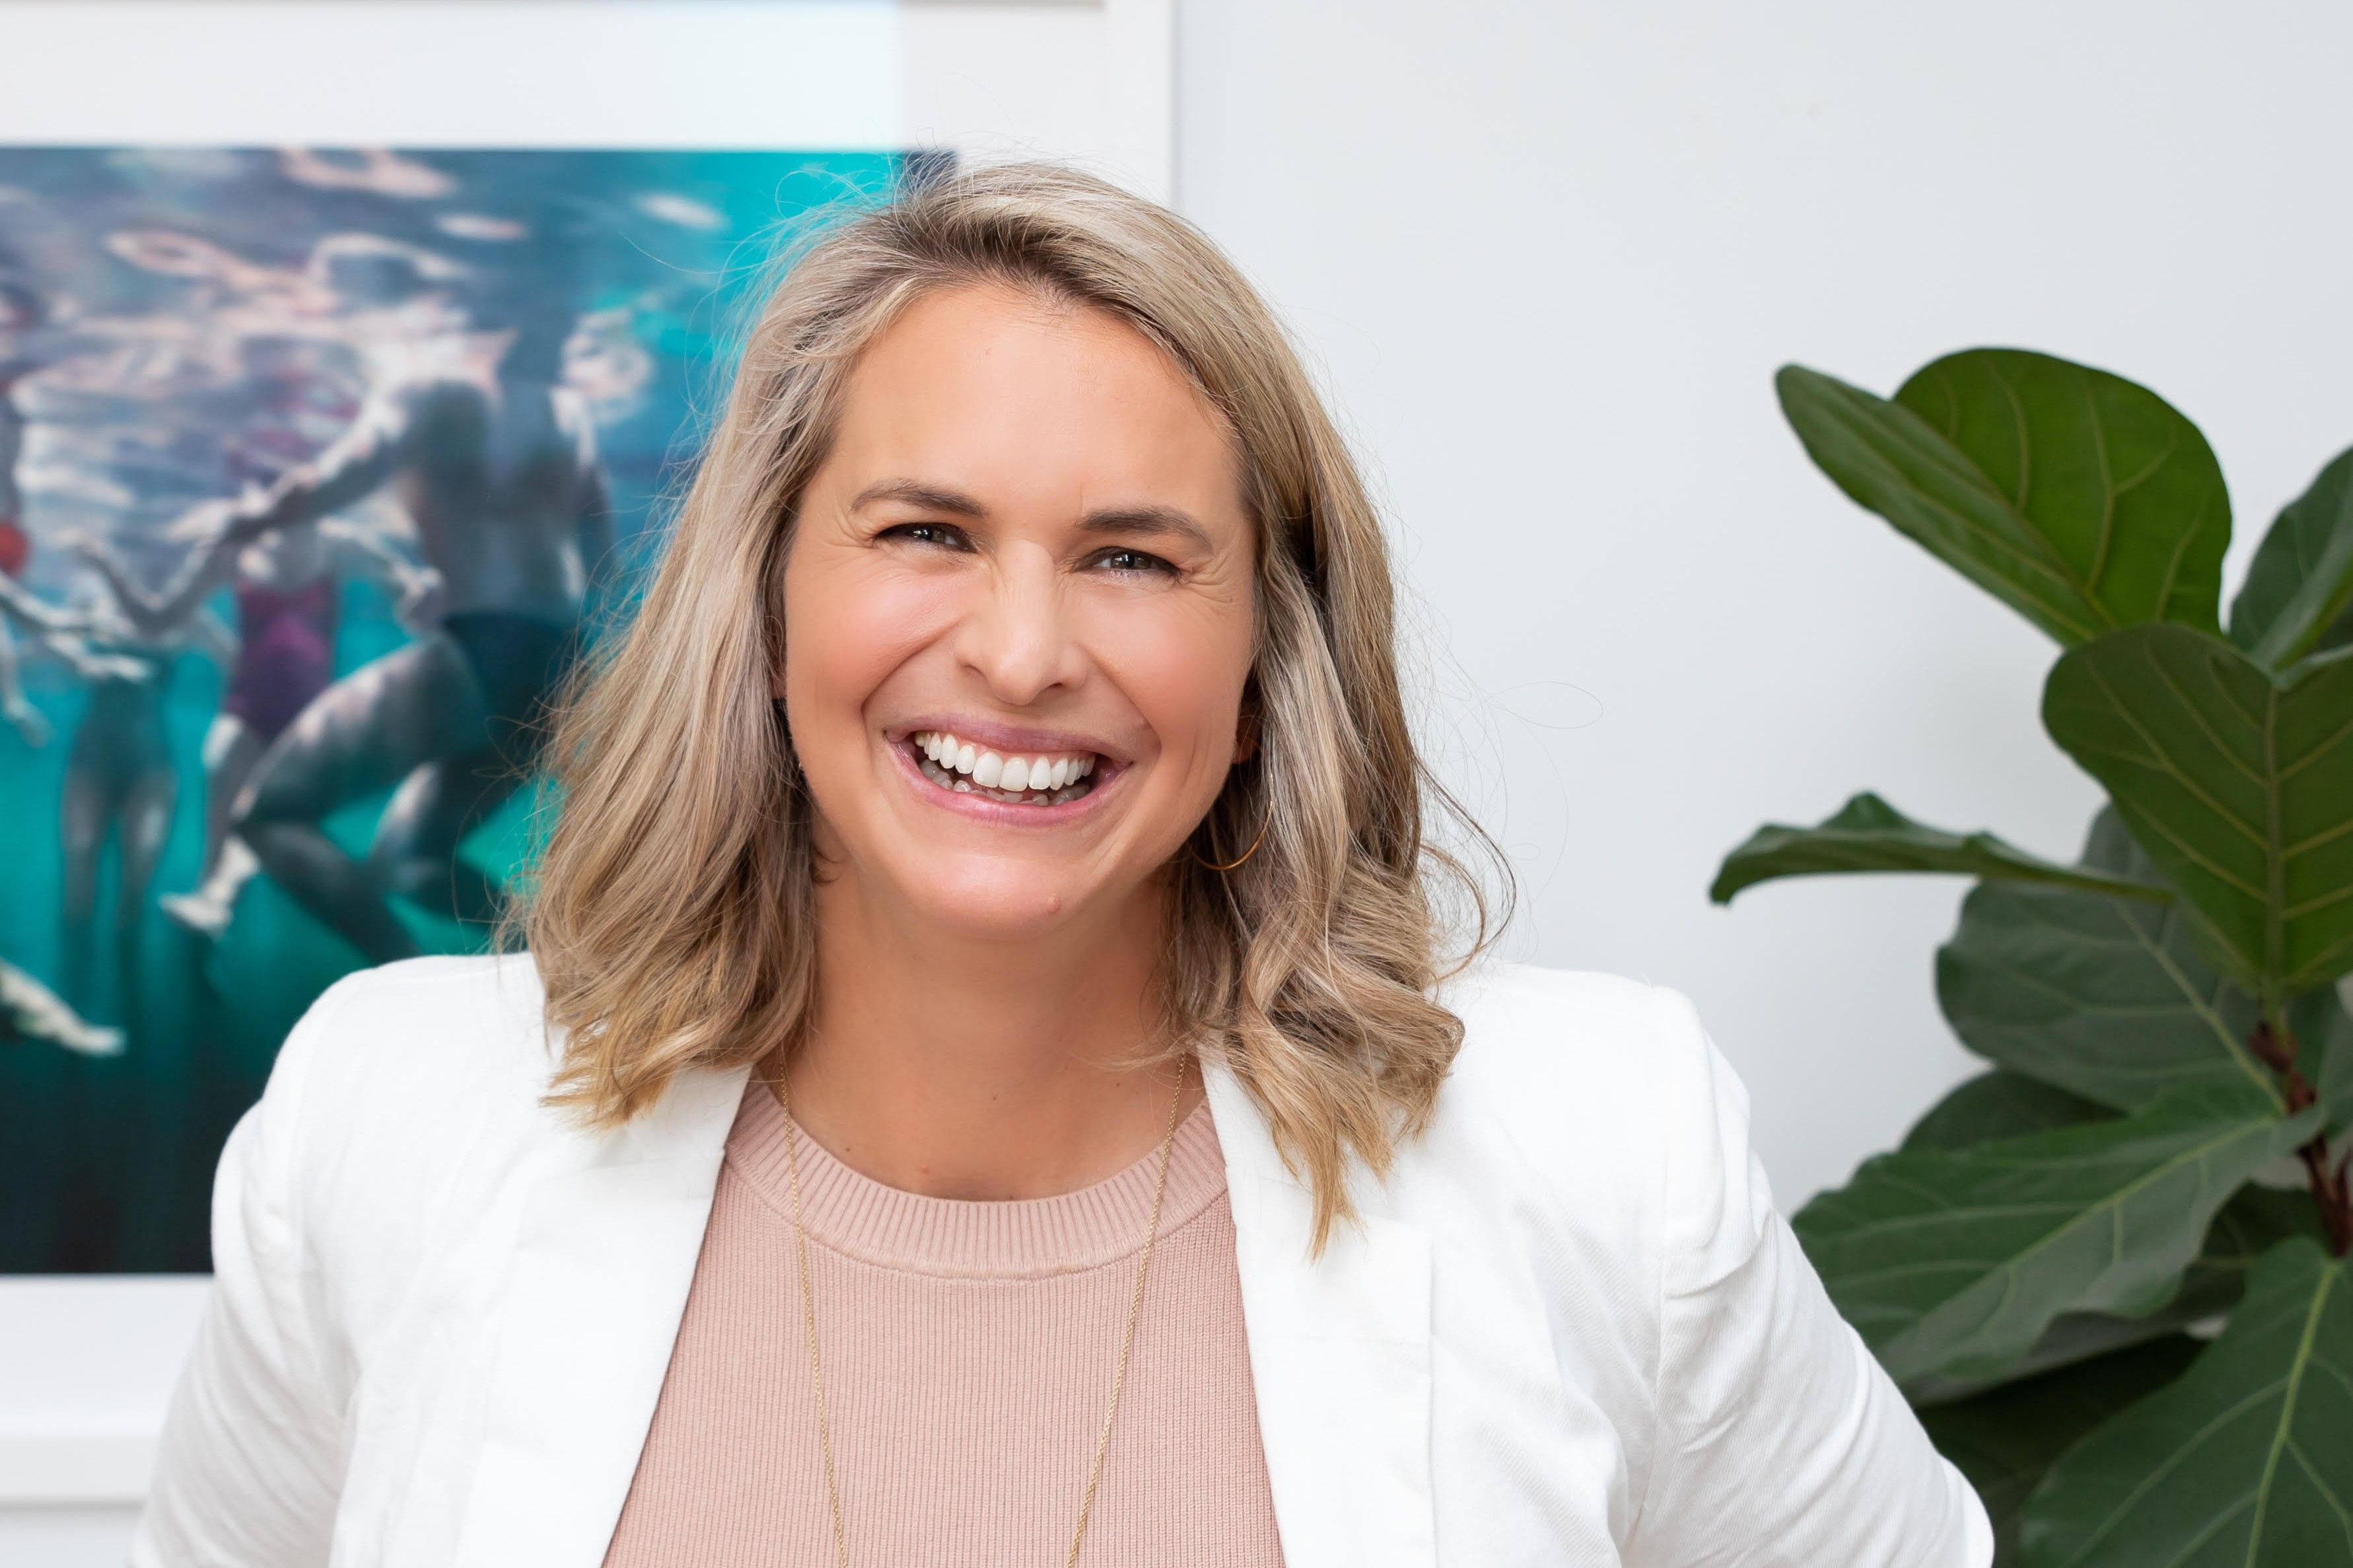 Poolwerx signs Libby Trickett | Inside Franchise Business Executive